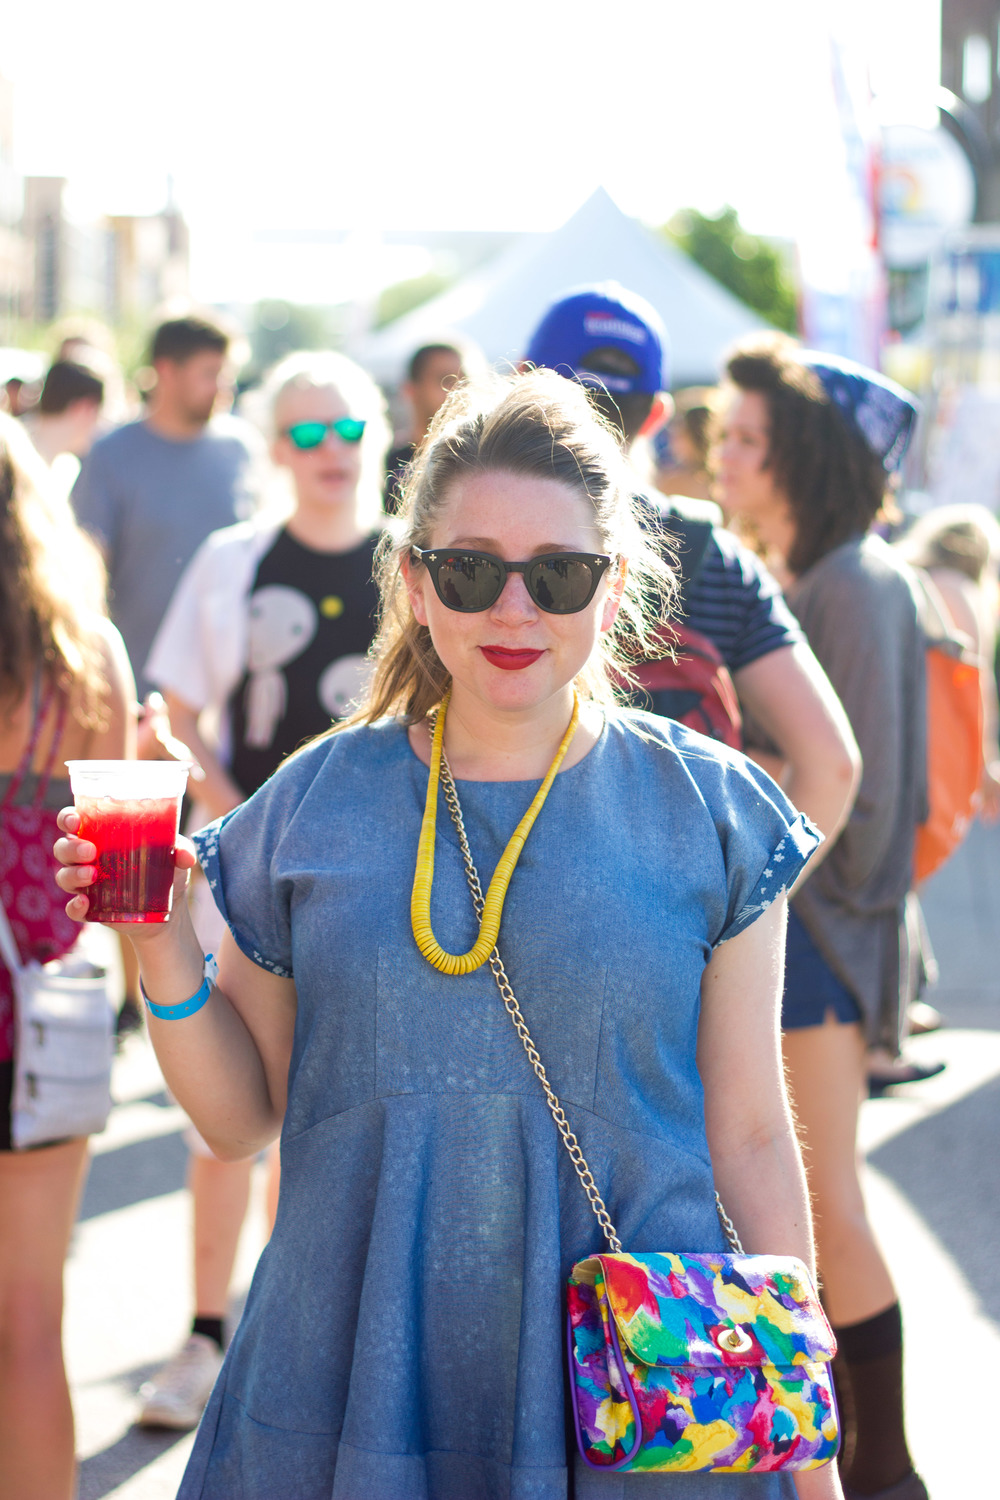 M Pettipoole – Chambray Dress at 80/35 Music Festival